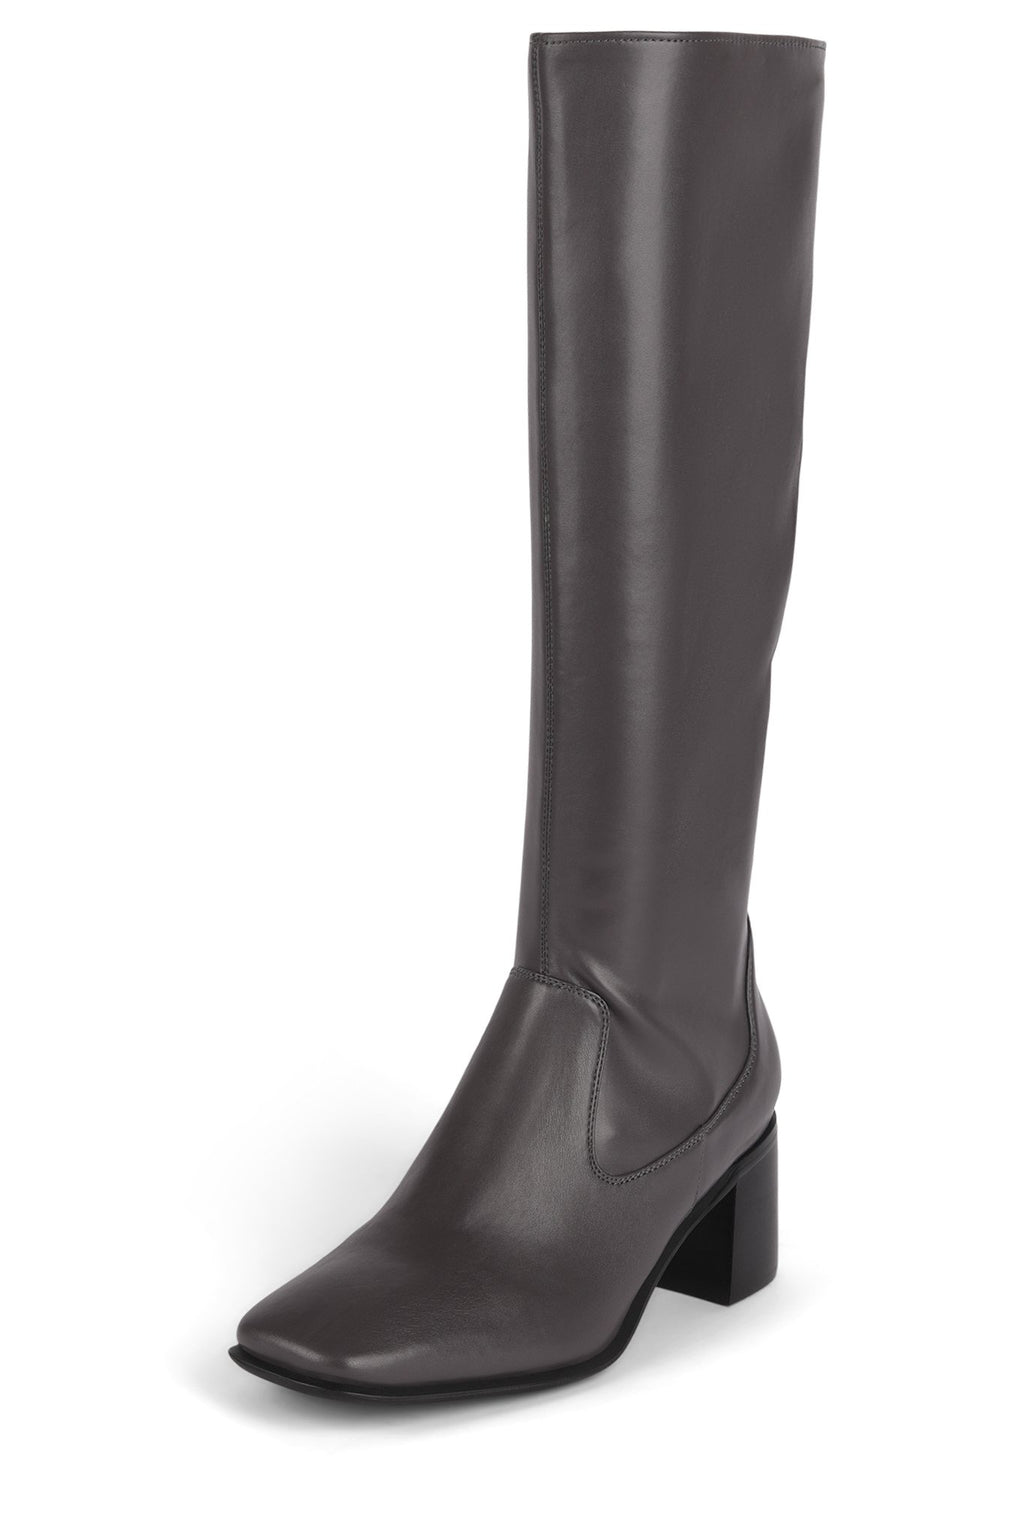 JEREM-KH Knee-High Boot YYH